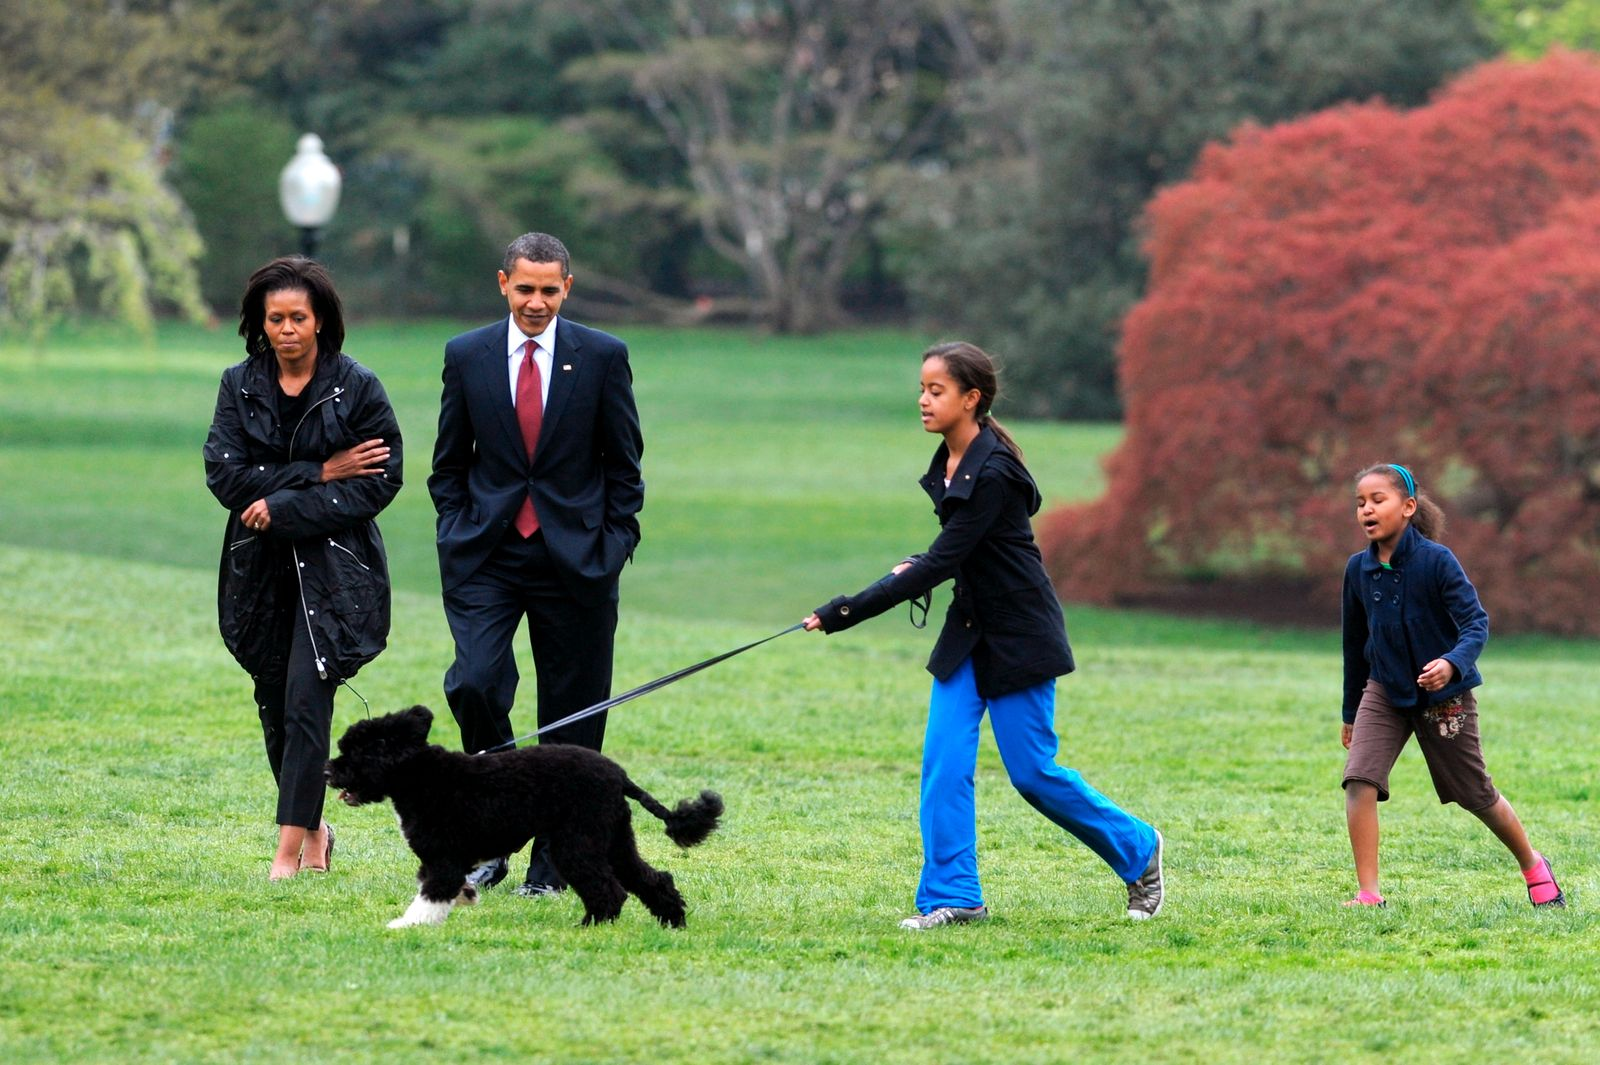 Bo, former First Dog of the United States, dies